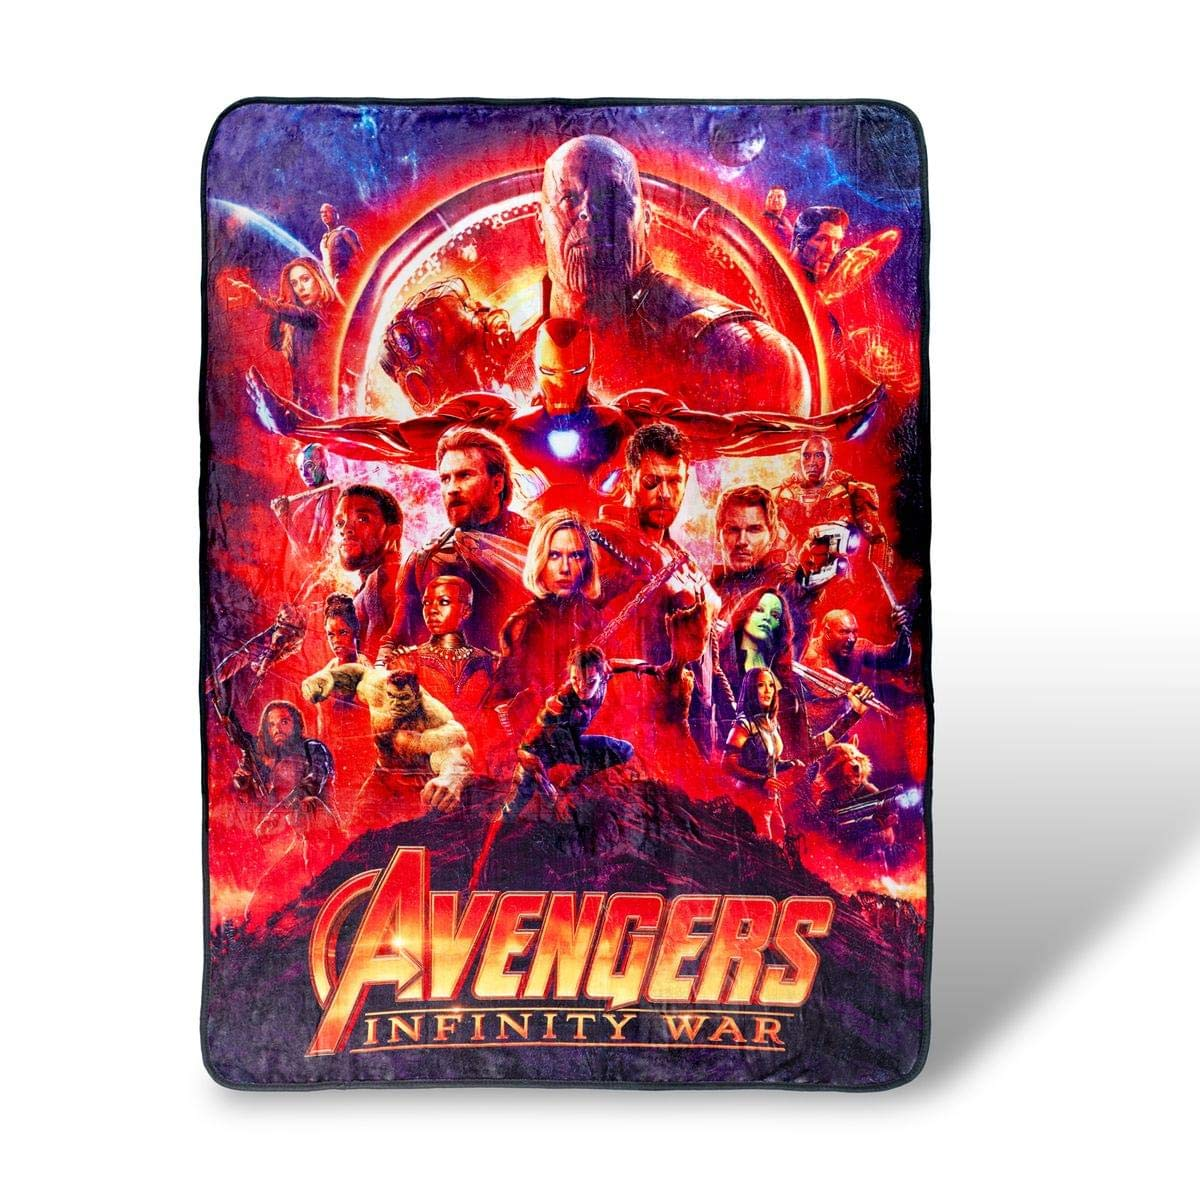 Provided Avengers 3 Infinity War Persona Thanos Superhero Iron Man Spiderman American Captain Pillow Case Home Decoration Cushion Cover Home Textile